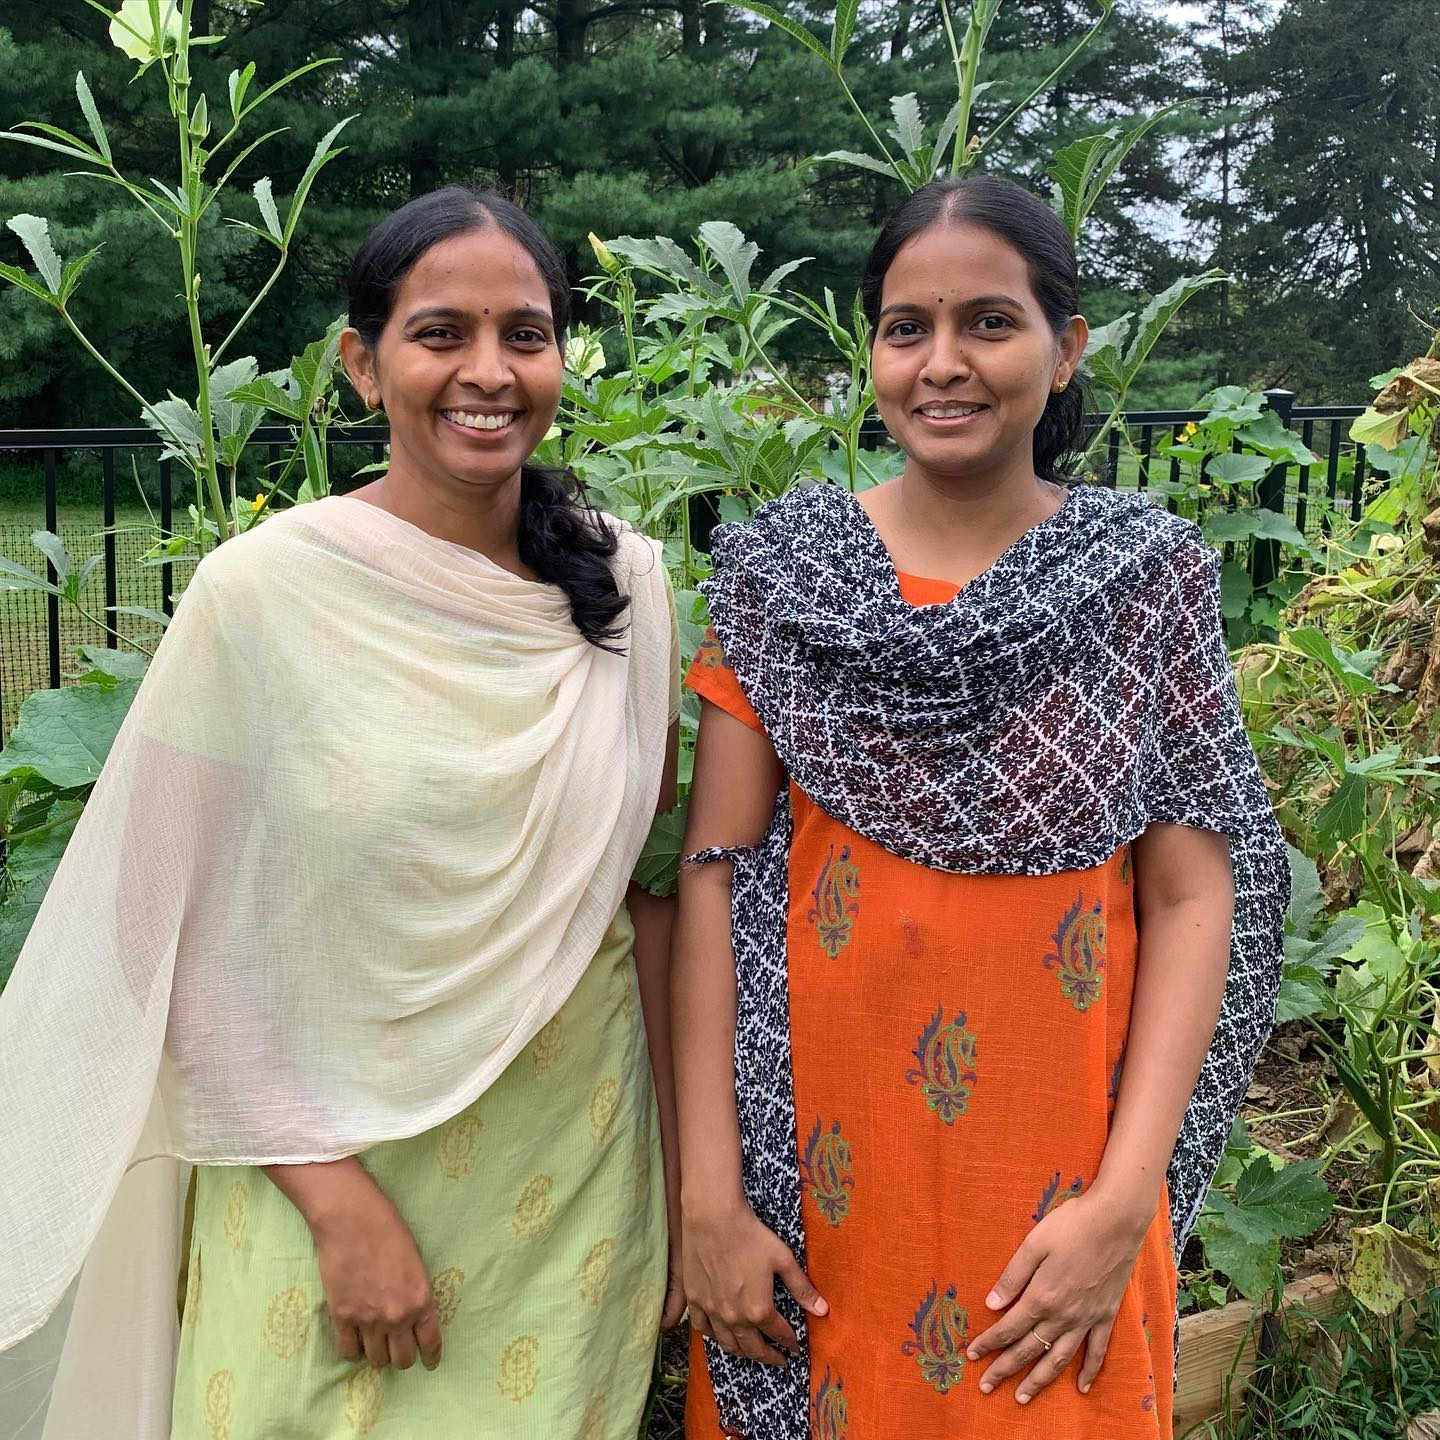 So happy to have @vannakam.baltimore back in our kitchen. Shanthi and Sumathi will offer their South Indian cooking every Wednesday 5-9! Takeout also available by ordering in person at our window or by phone. Come fill your belly with love! #southindianfood #tamilfood #sisterchefs #womenrunthiskitchen #twins #chickencurry #dosa #dosai #peaspulav #sambar